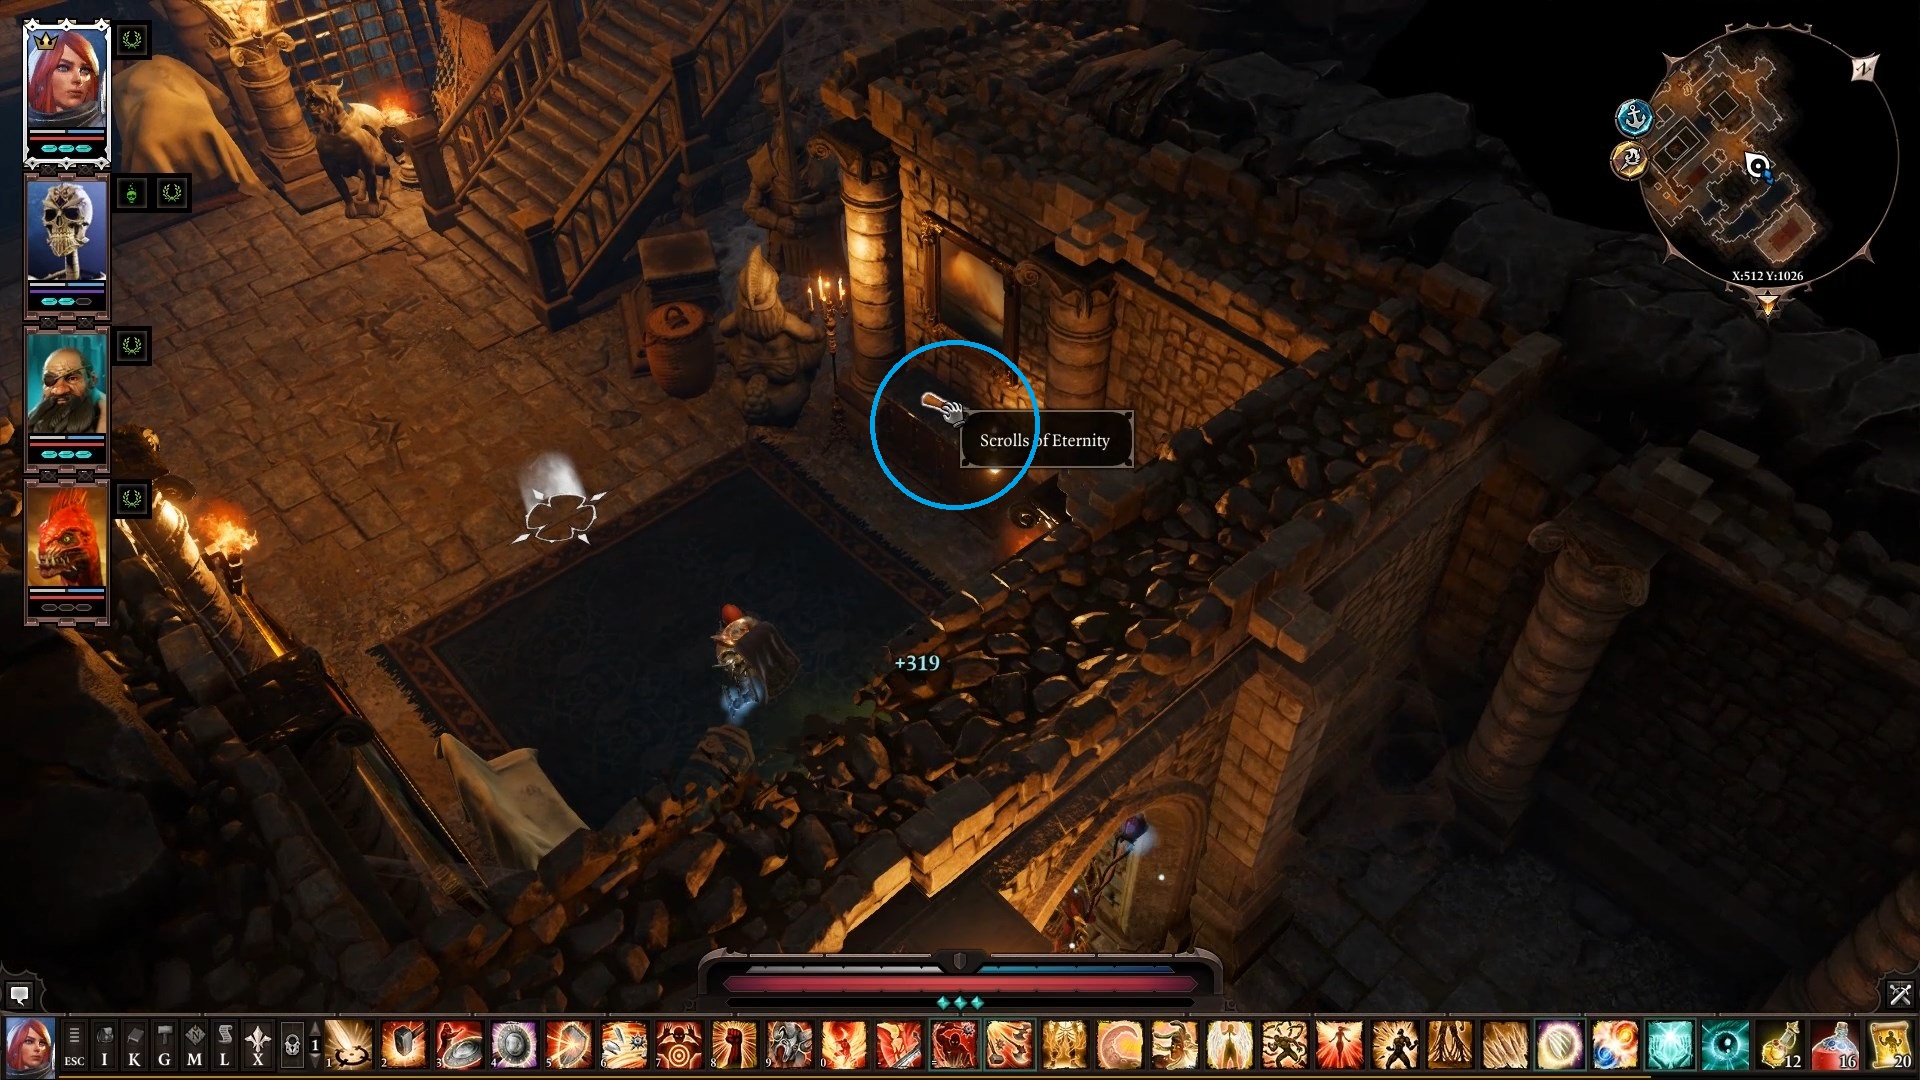 The location of the second item. - Arx Puzzles | Puzzles and secrets - Puzzles and secrets - Divinity: Original Sin II Game Guide